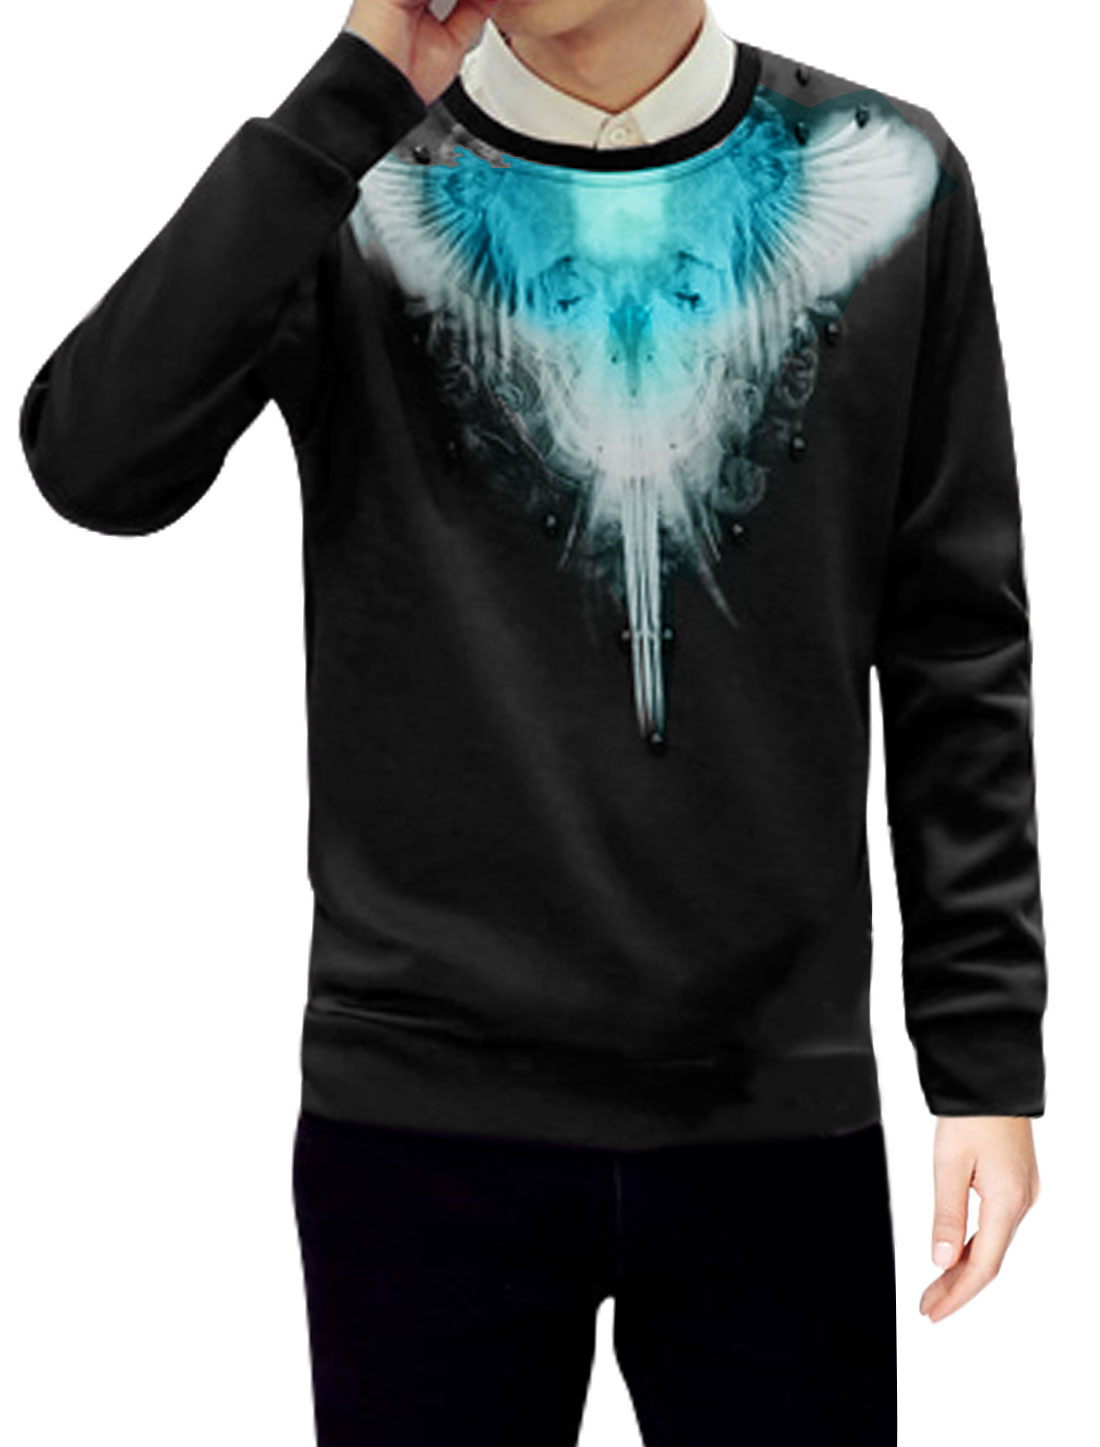 Men Crew Neck Skull Decor Novelty Wings Sweatshirt Black M